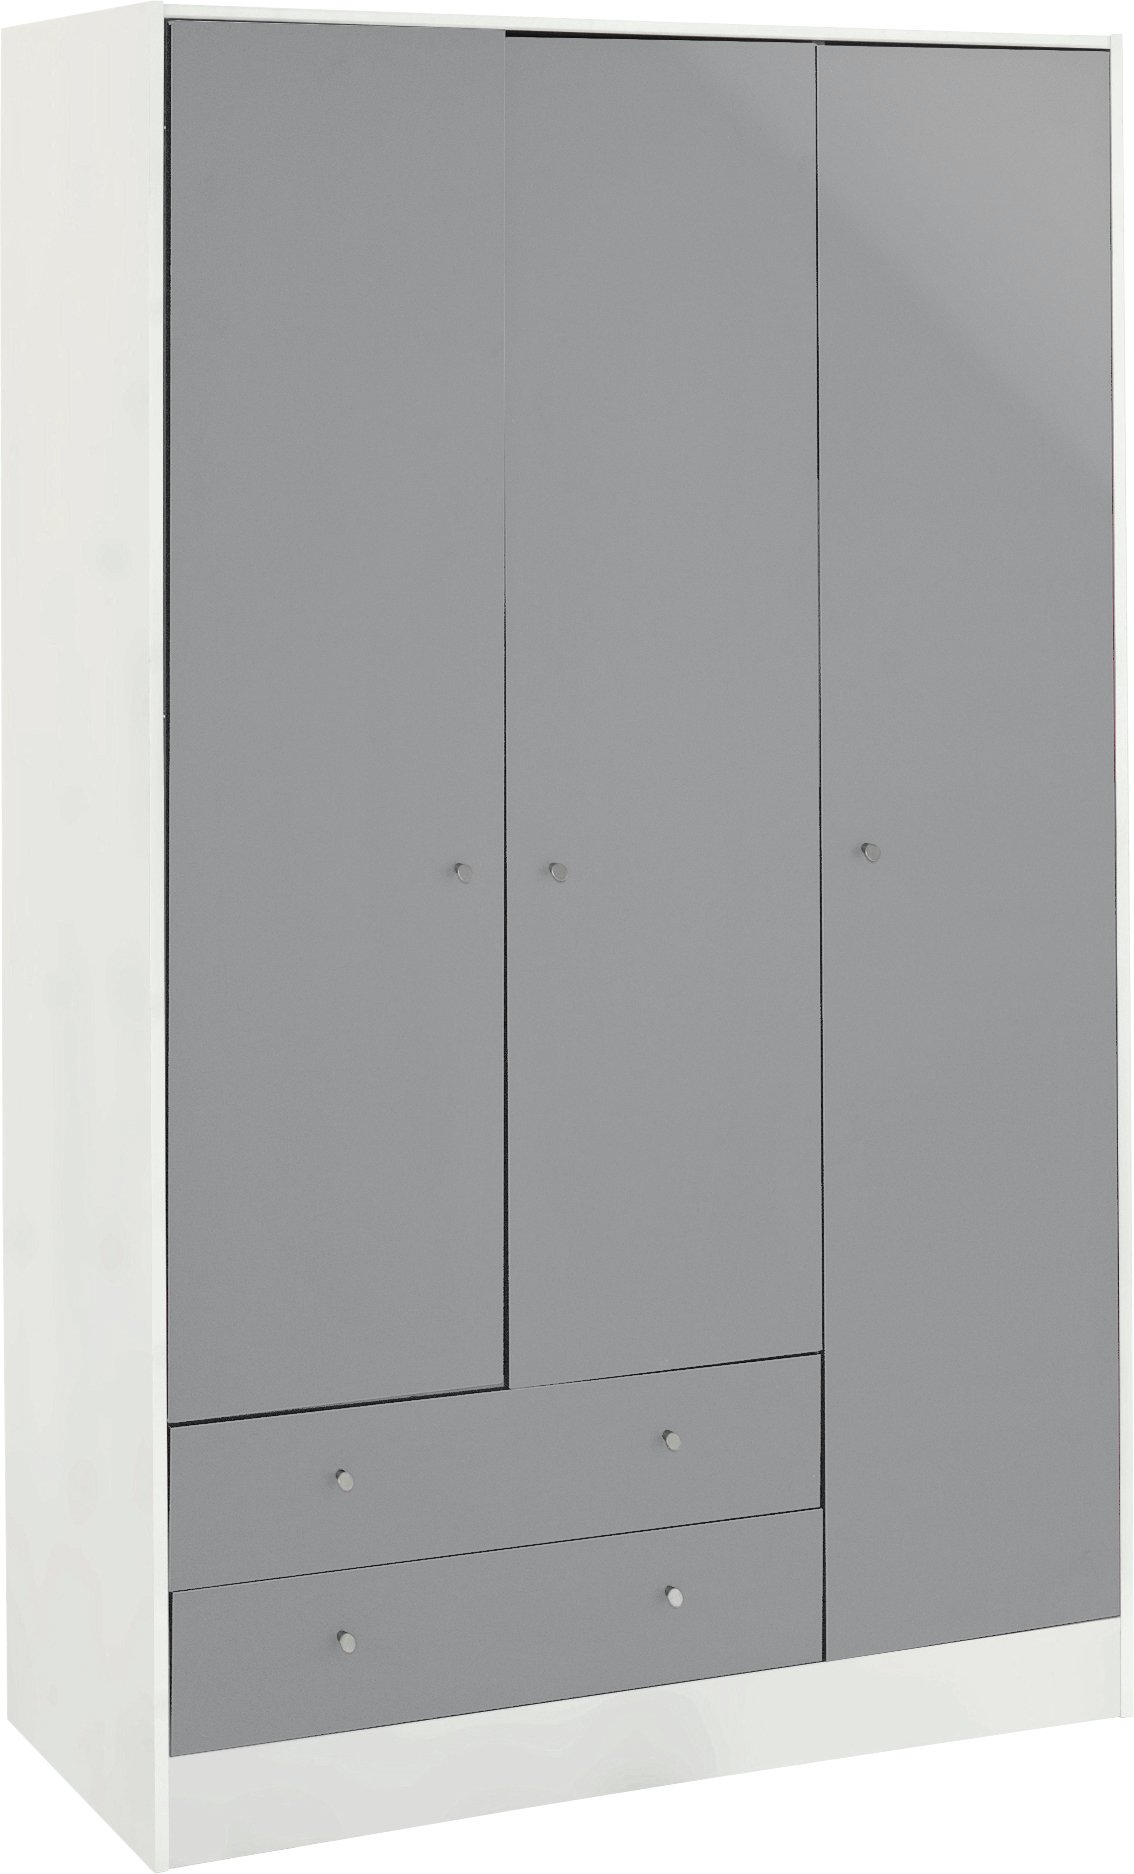 home-kids-new-malibu-gloss-3-door-wardrobe-grey